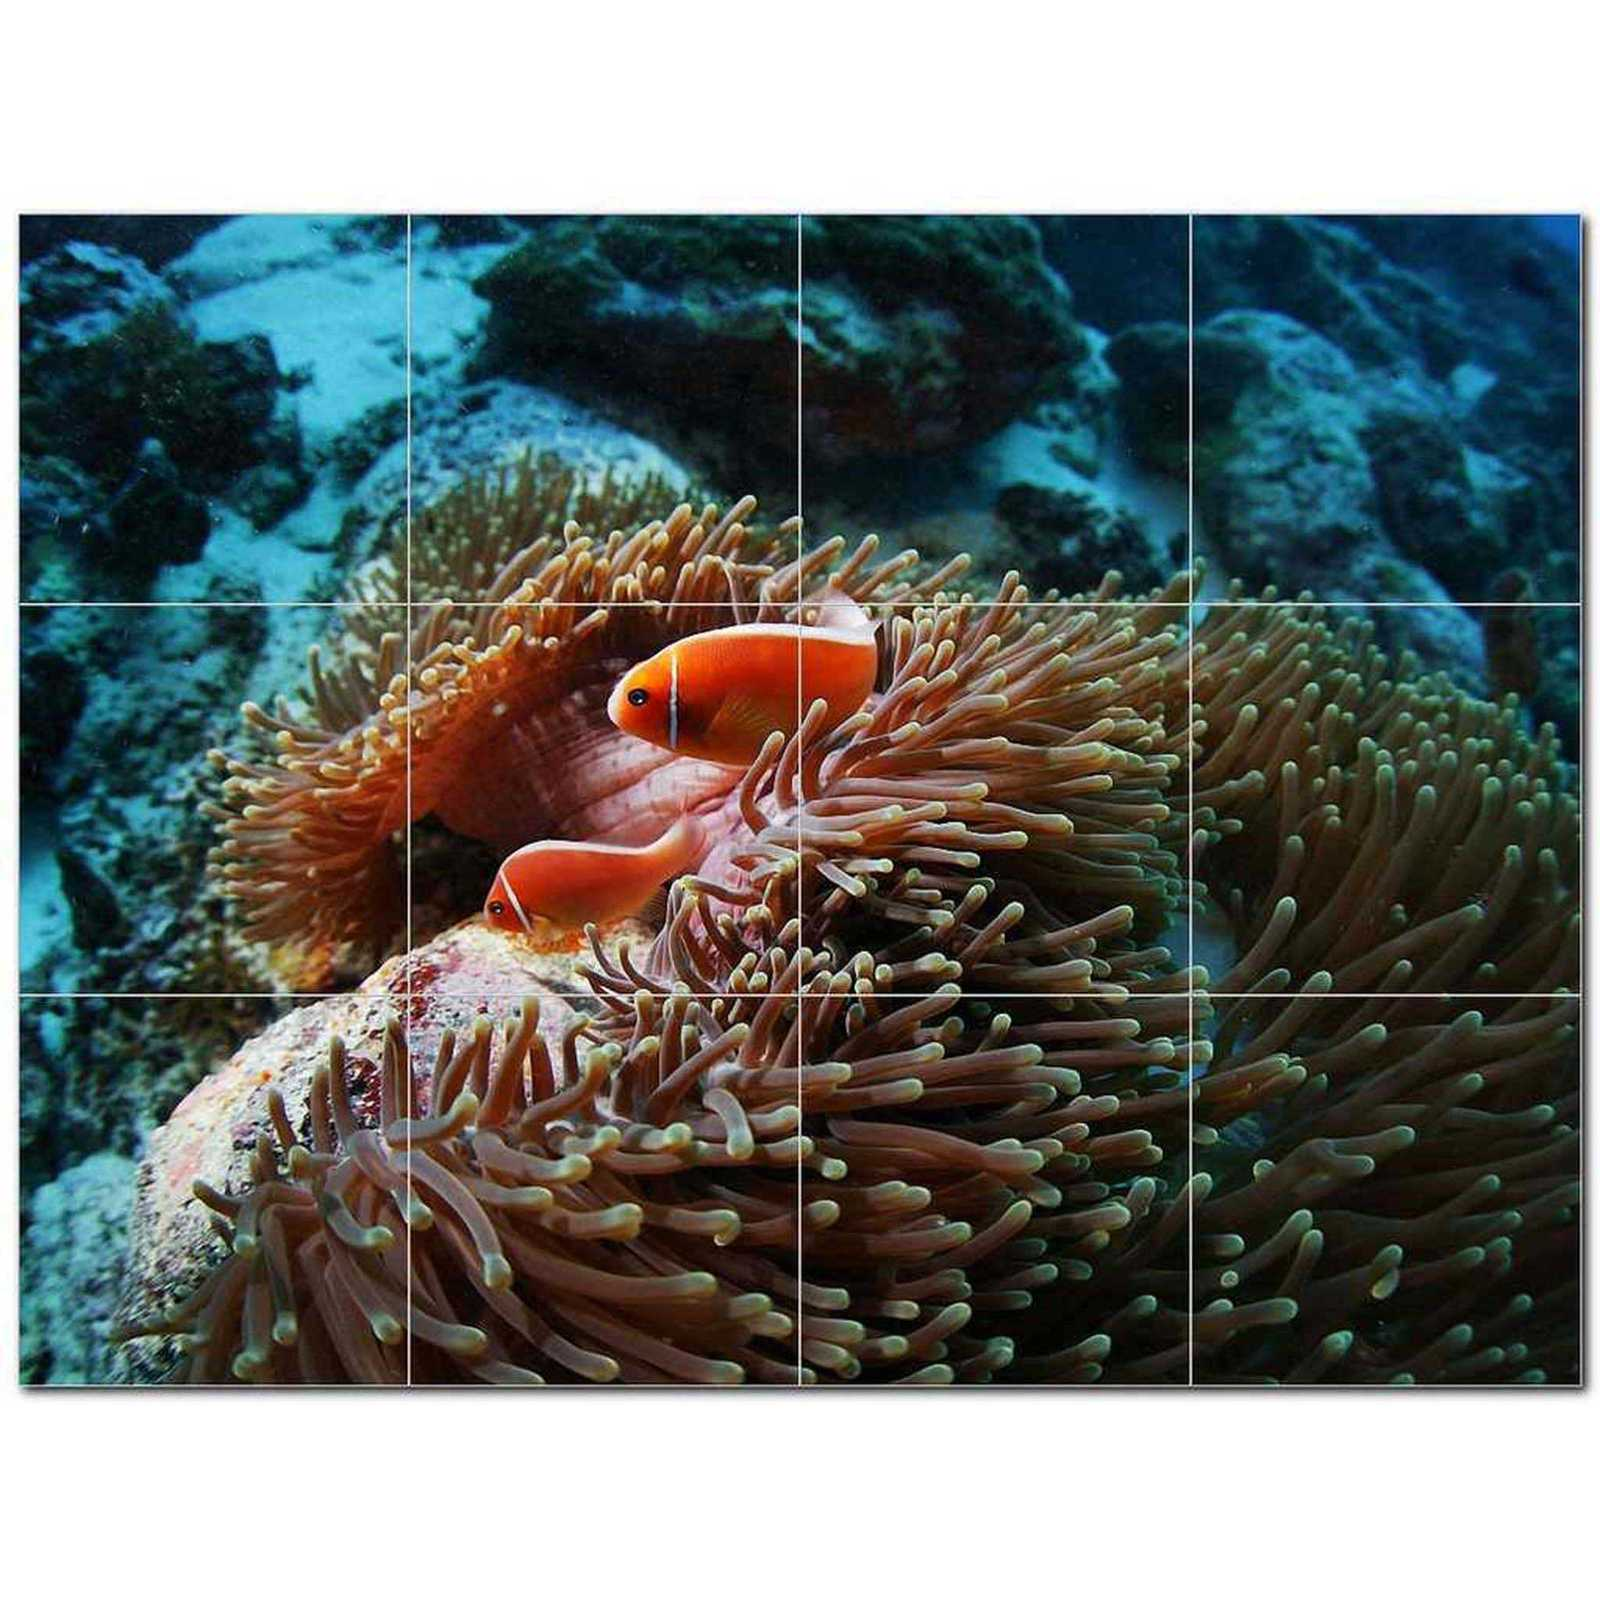 Primary image for Sealife Picture Ceramic Tile Mural Kitchen Backsplash Bathroom Shower BAZ405831